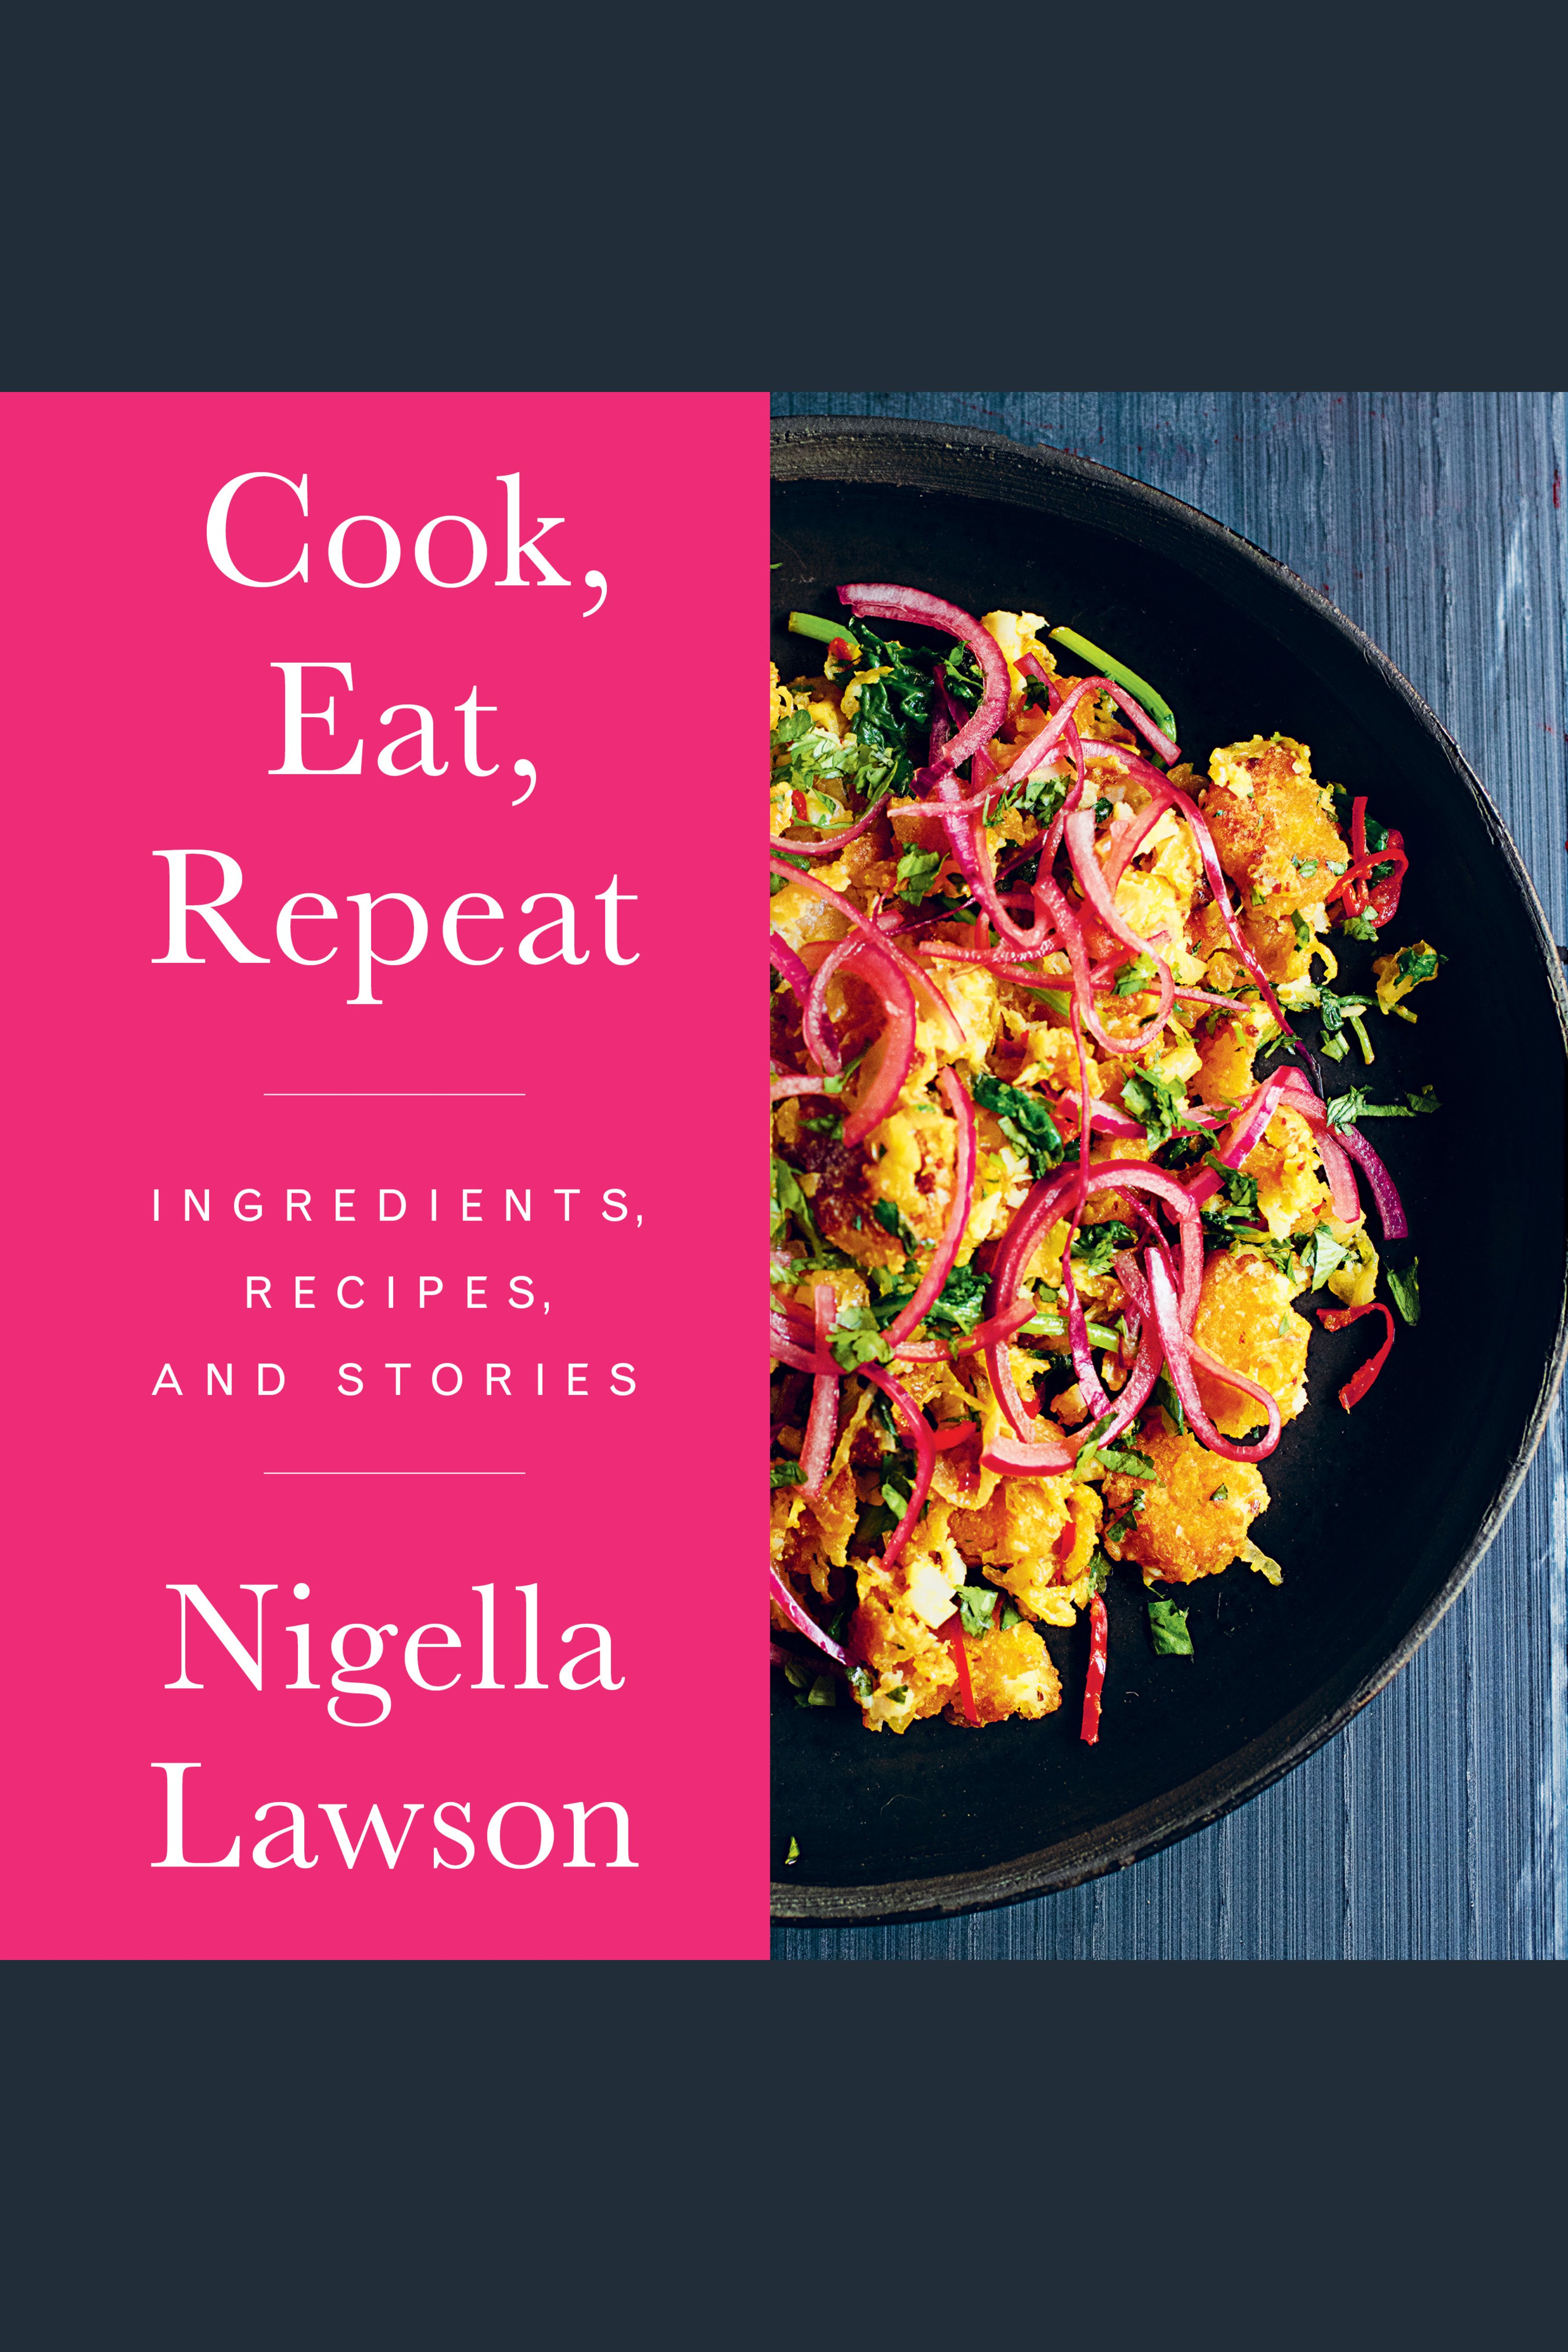 Cook, Eat, Repeat Ingredients, Recipes, and Stories